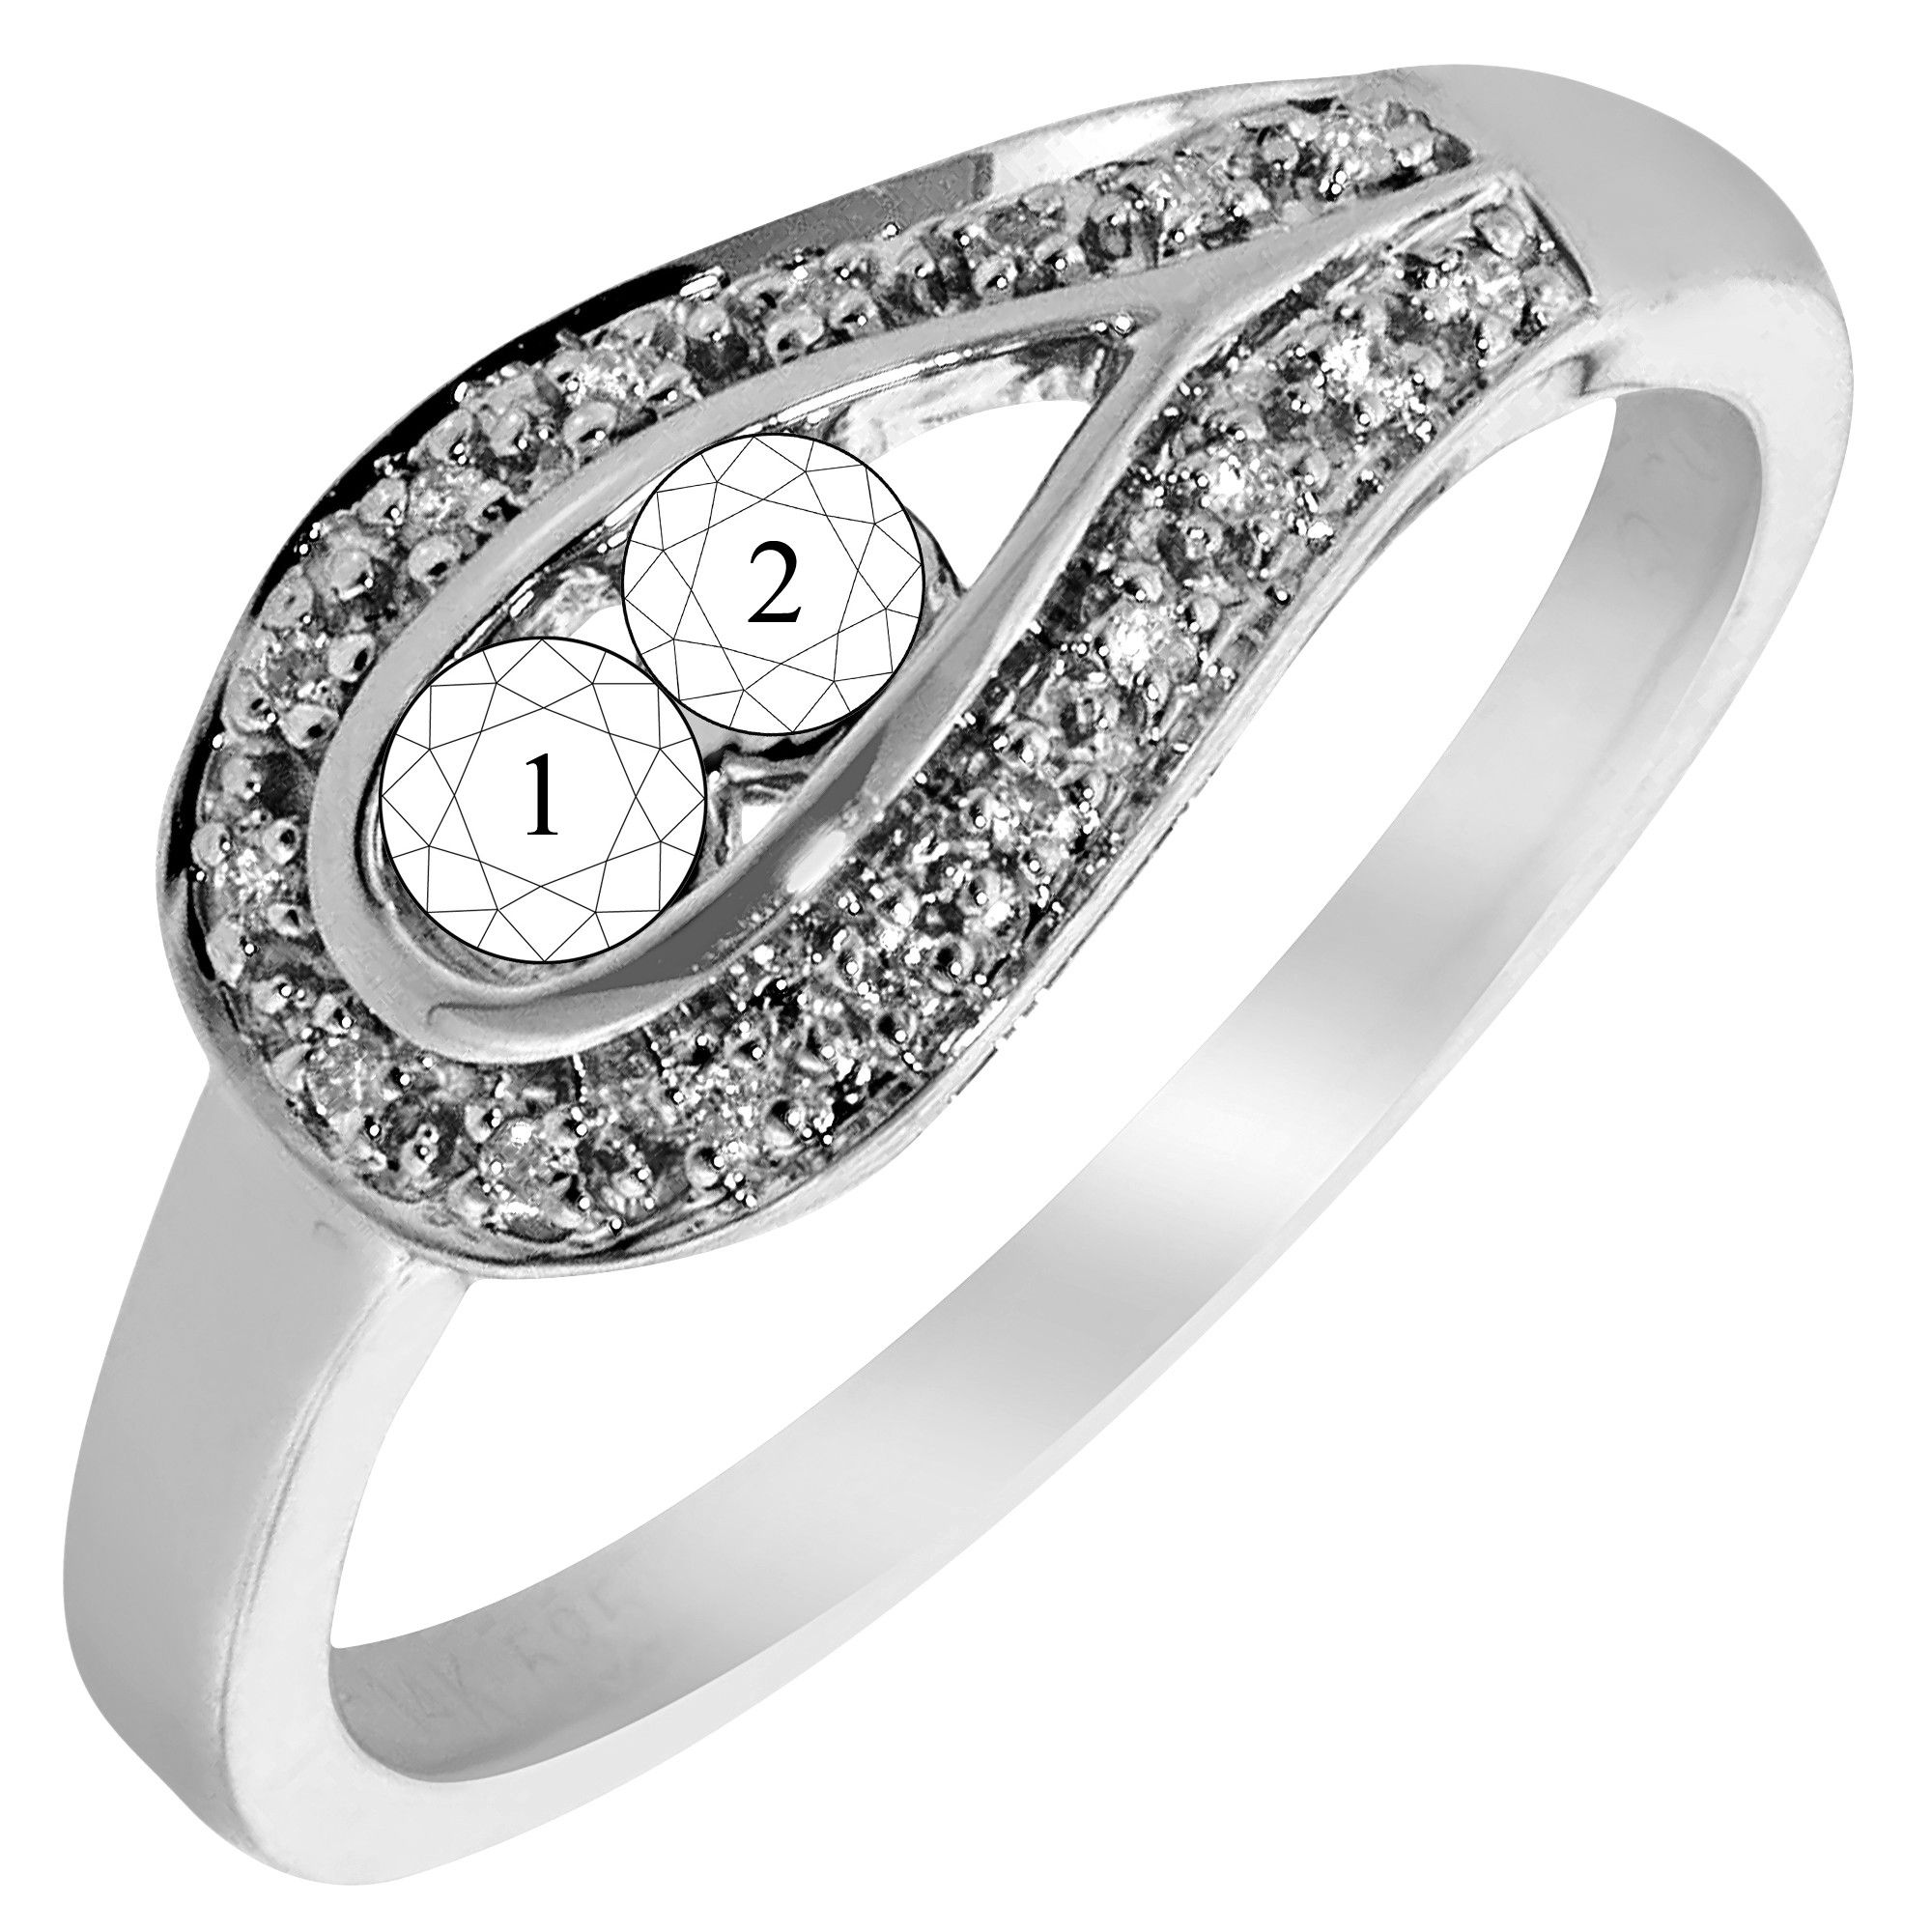 2-Stone Mothers Ring in 14kt White Gold with Diamonds (1 ...